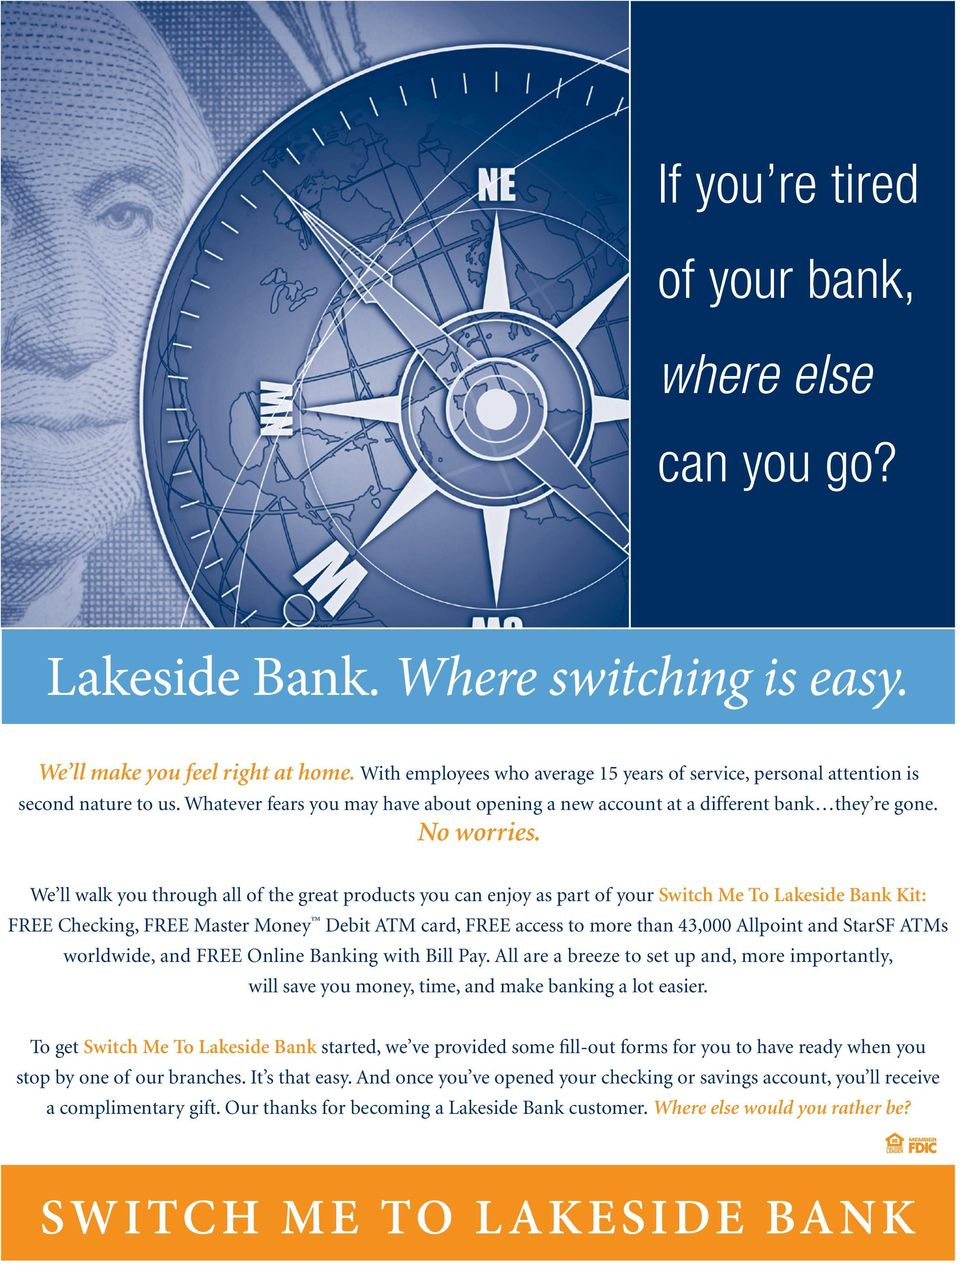 We ll walk you through all of the great products you can enjoy as part of your Switch Me To Lakeside Bank Kit: free Checking, free Master Money Debit ATM card, free access to more than 43,000